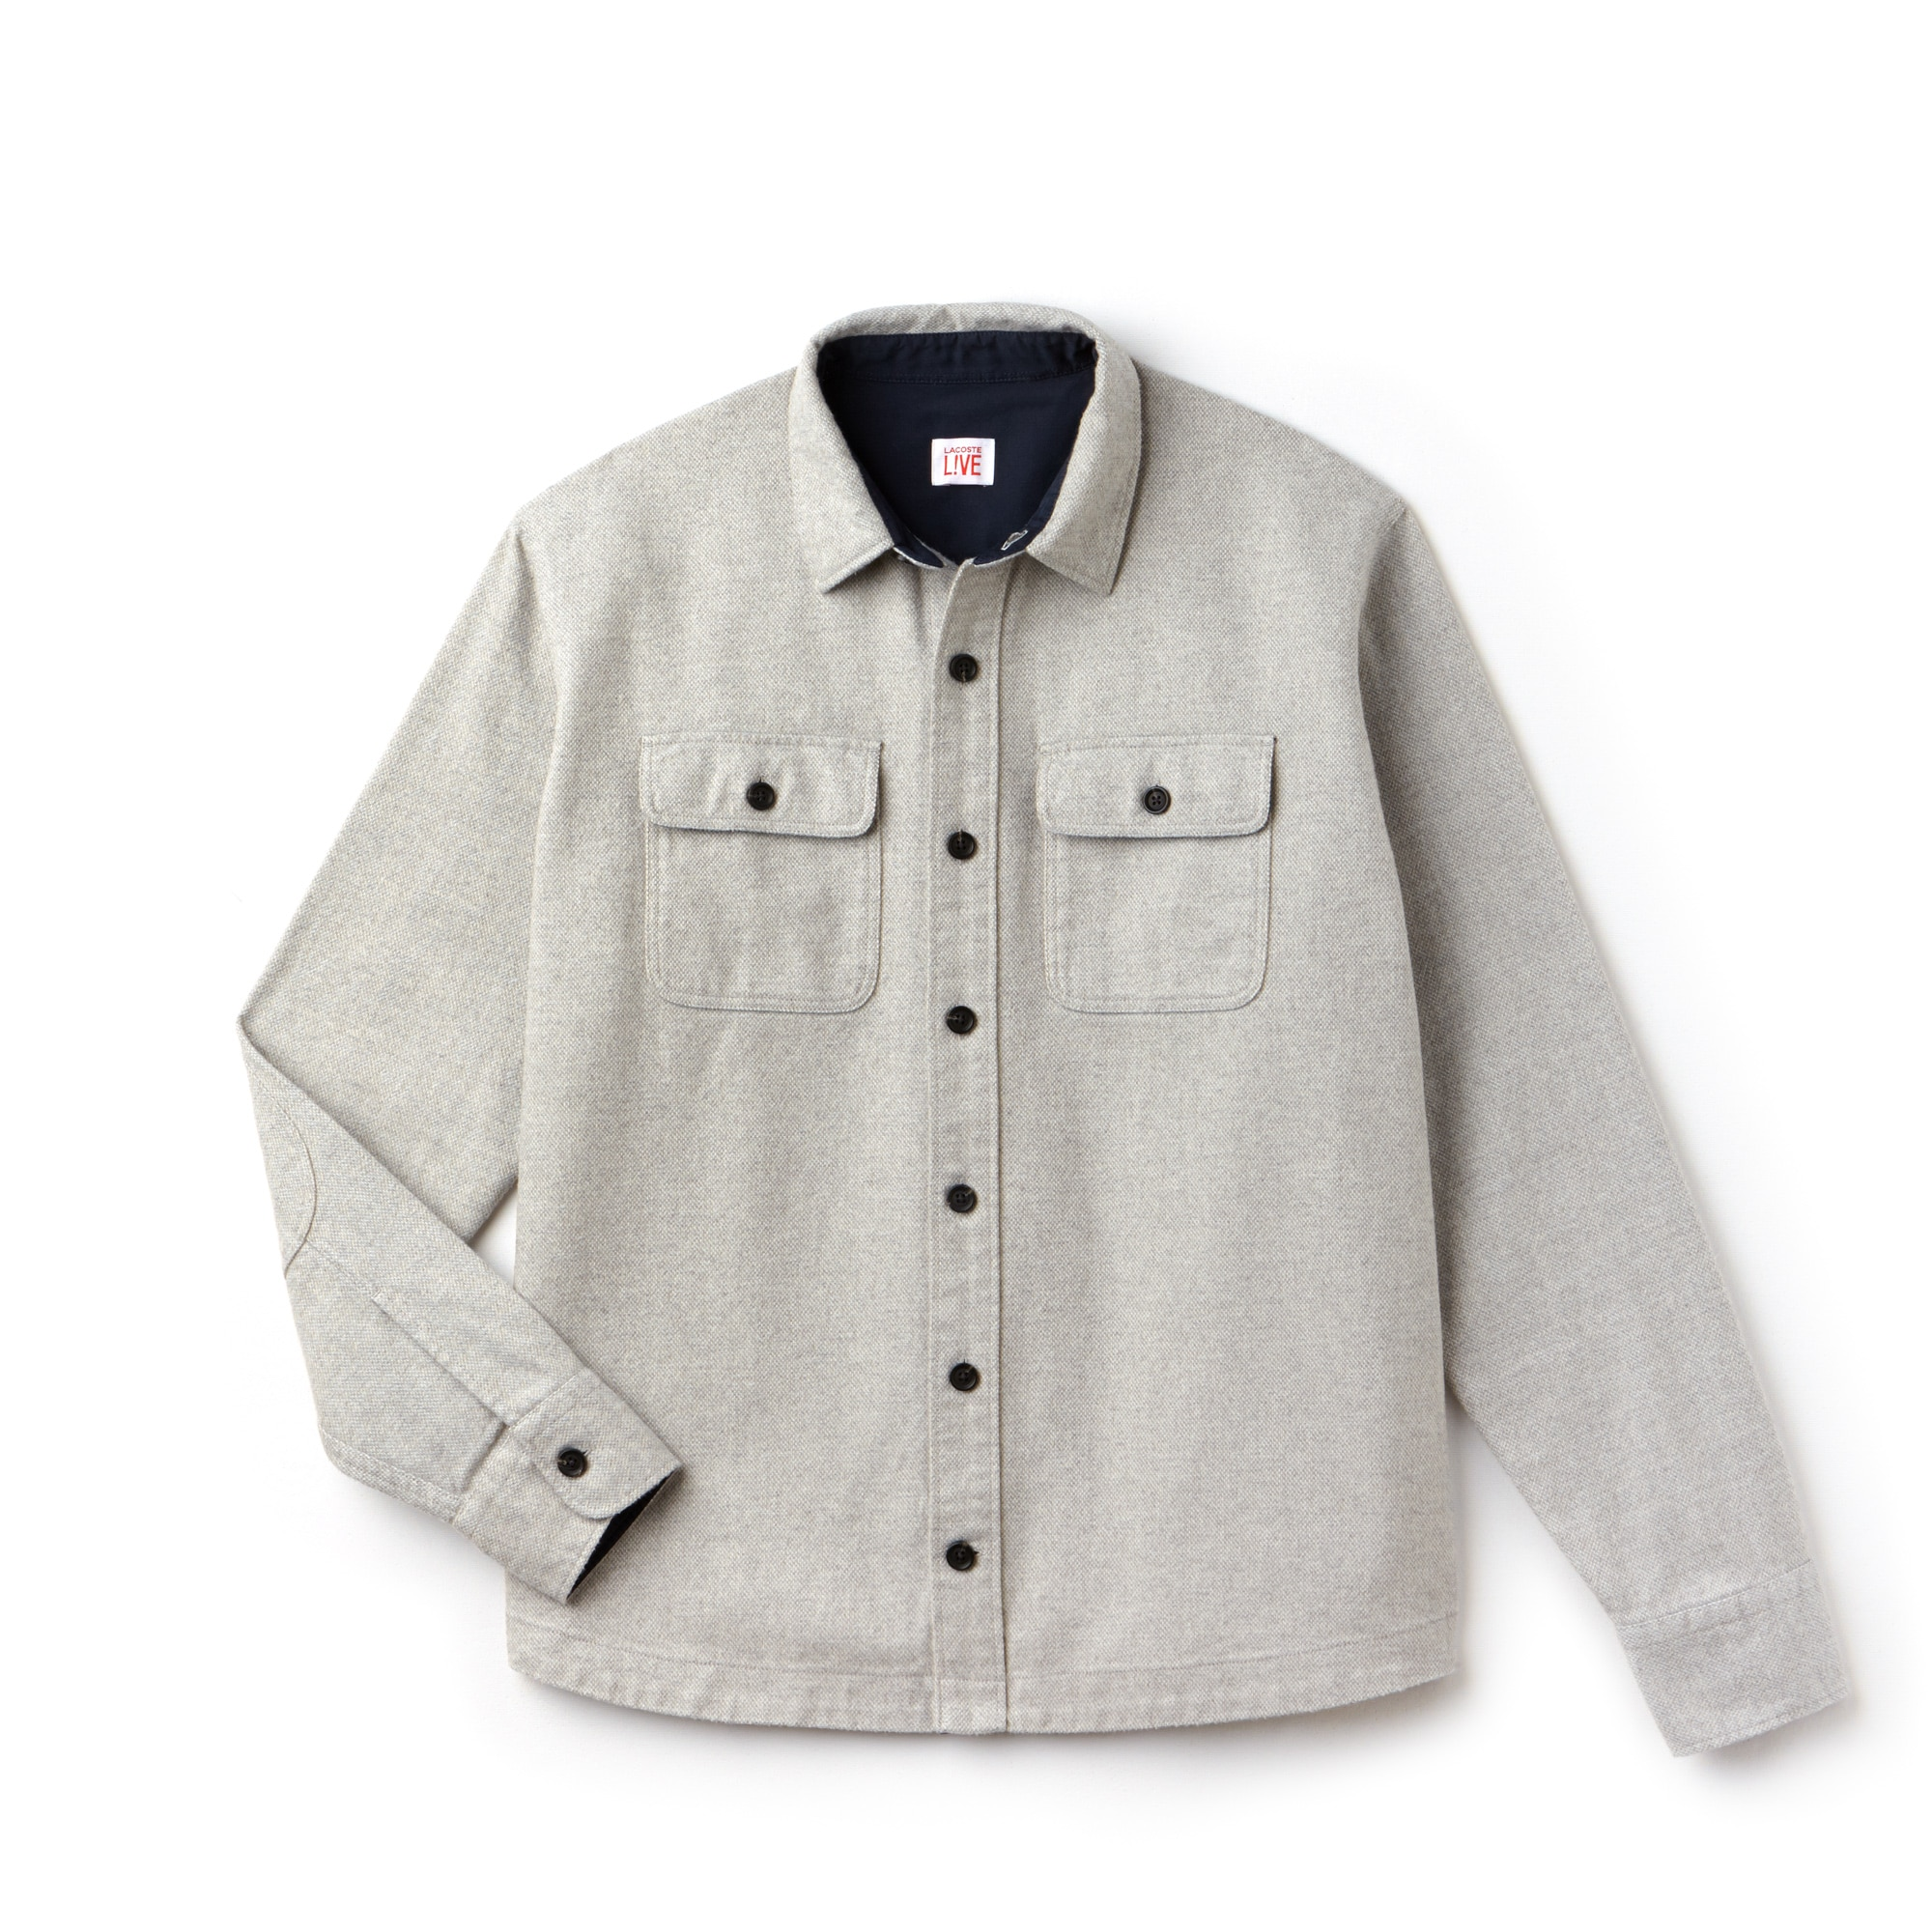 Men's LIVE Boxy Fit Cotton Flannel Shirt